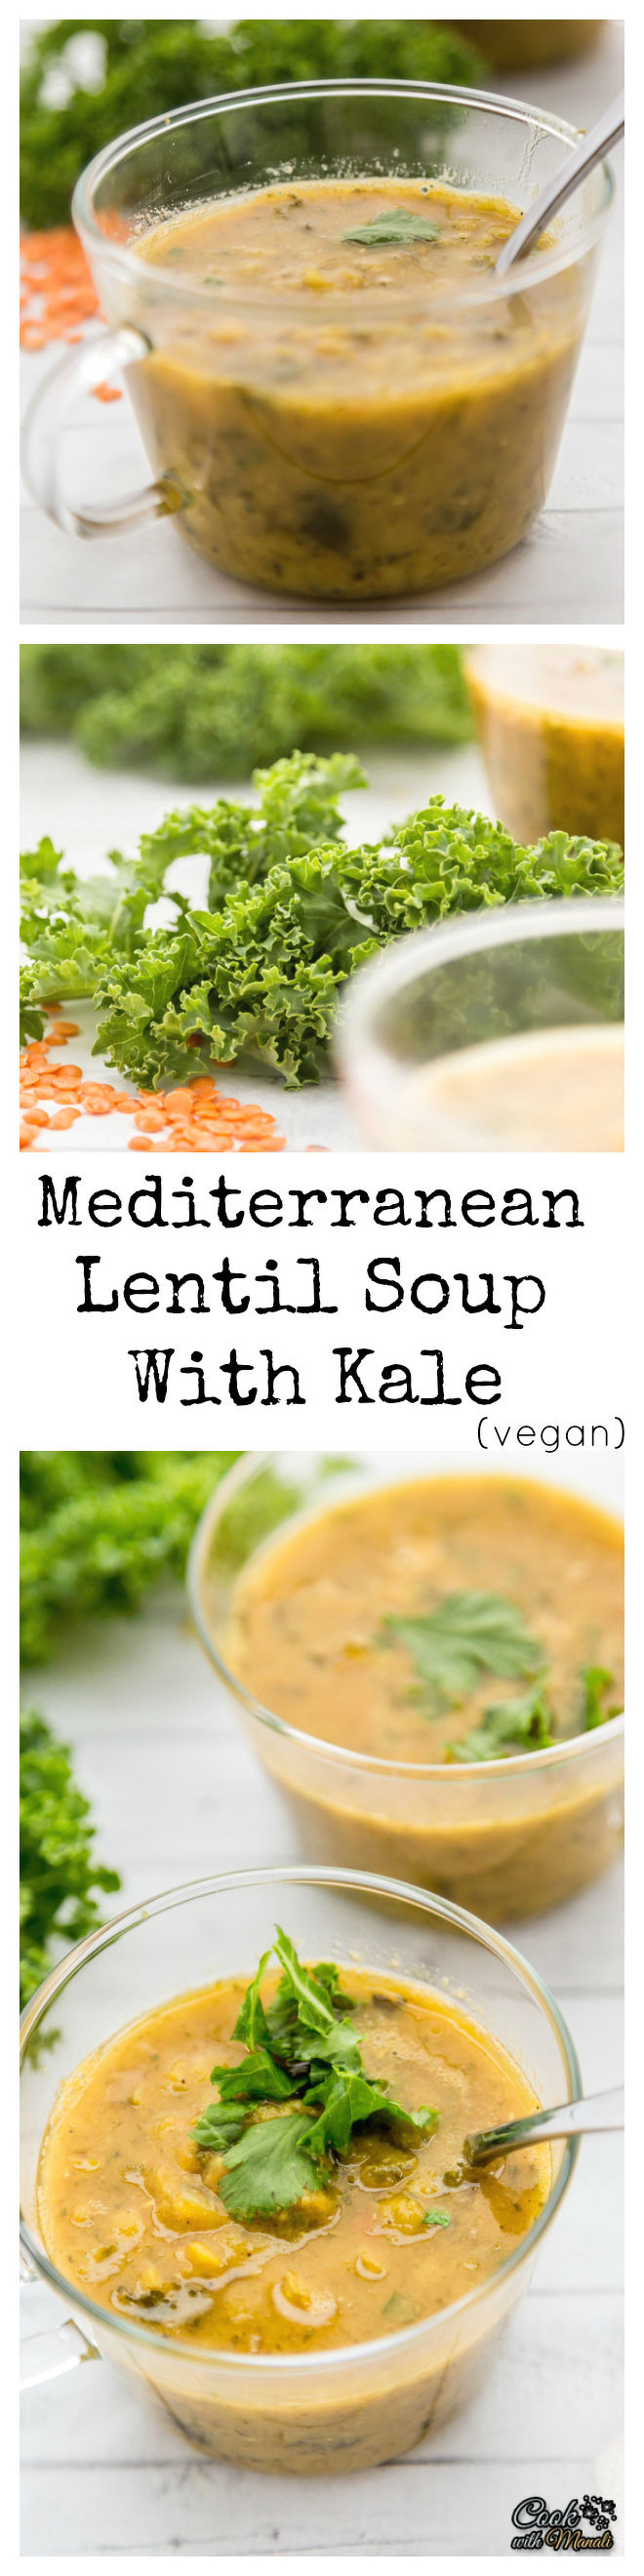 Mediterranean Lentil Soup with Kale Collage-nocwm